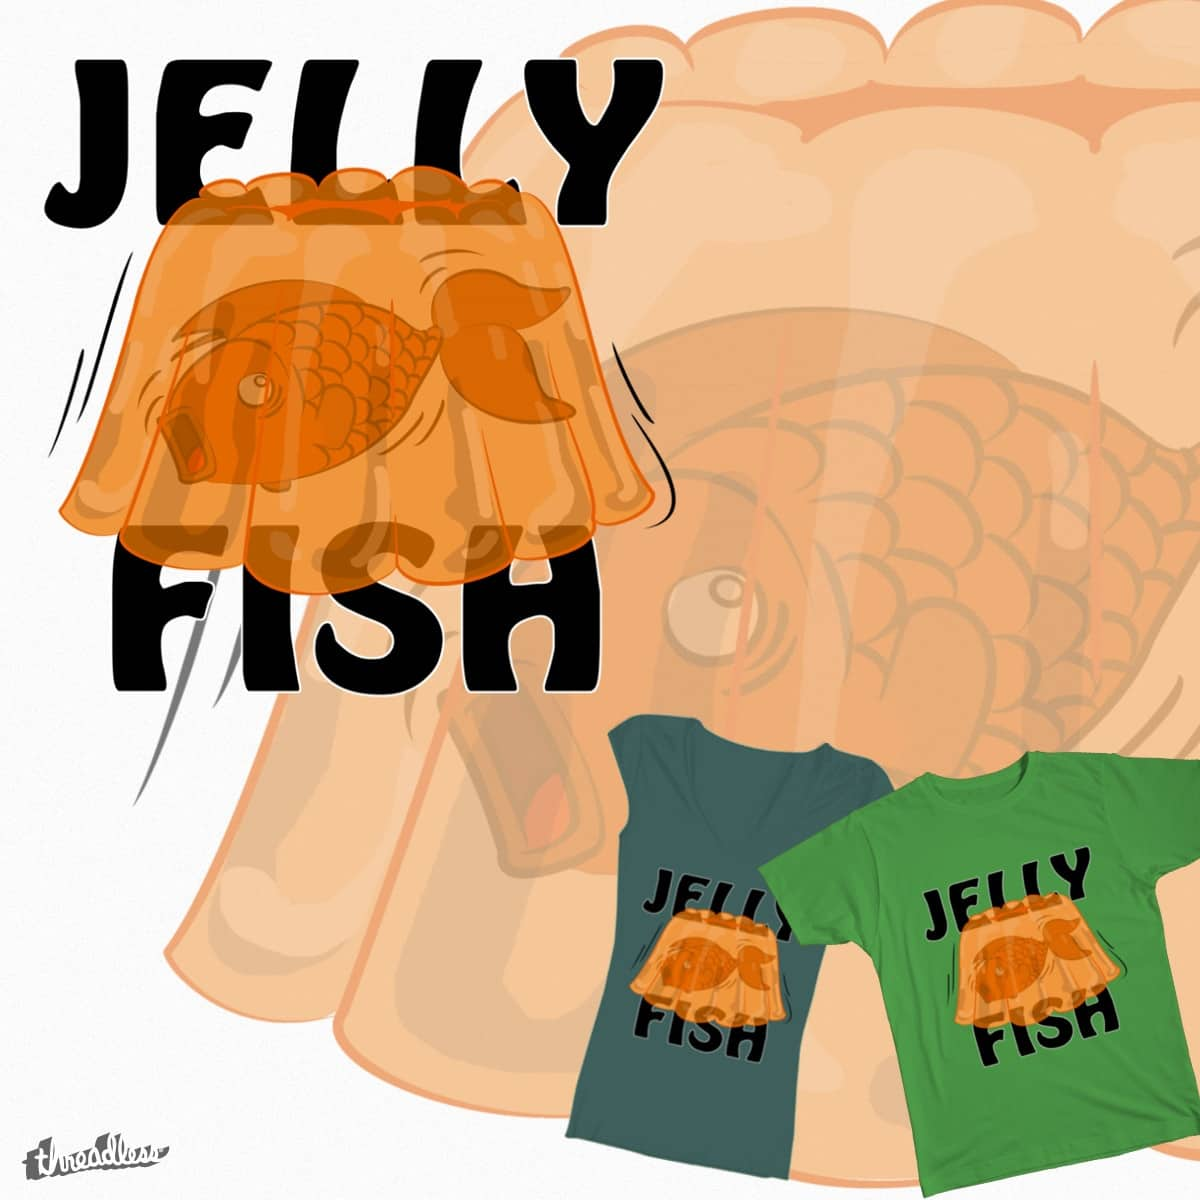 Jelly Fish by Kipke on Threadless